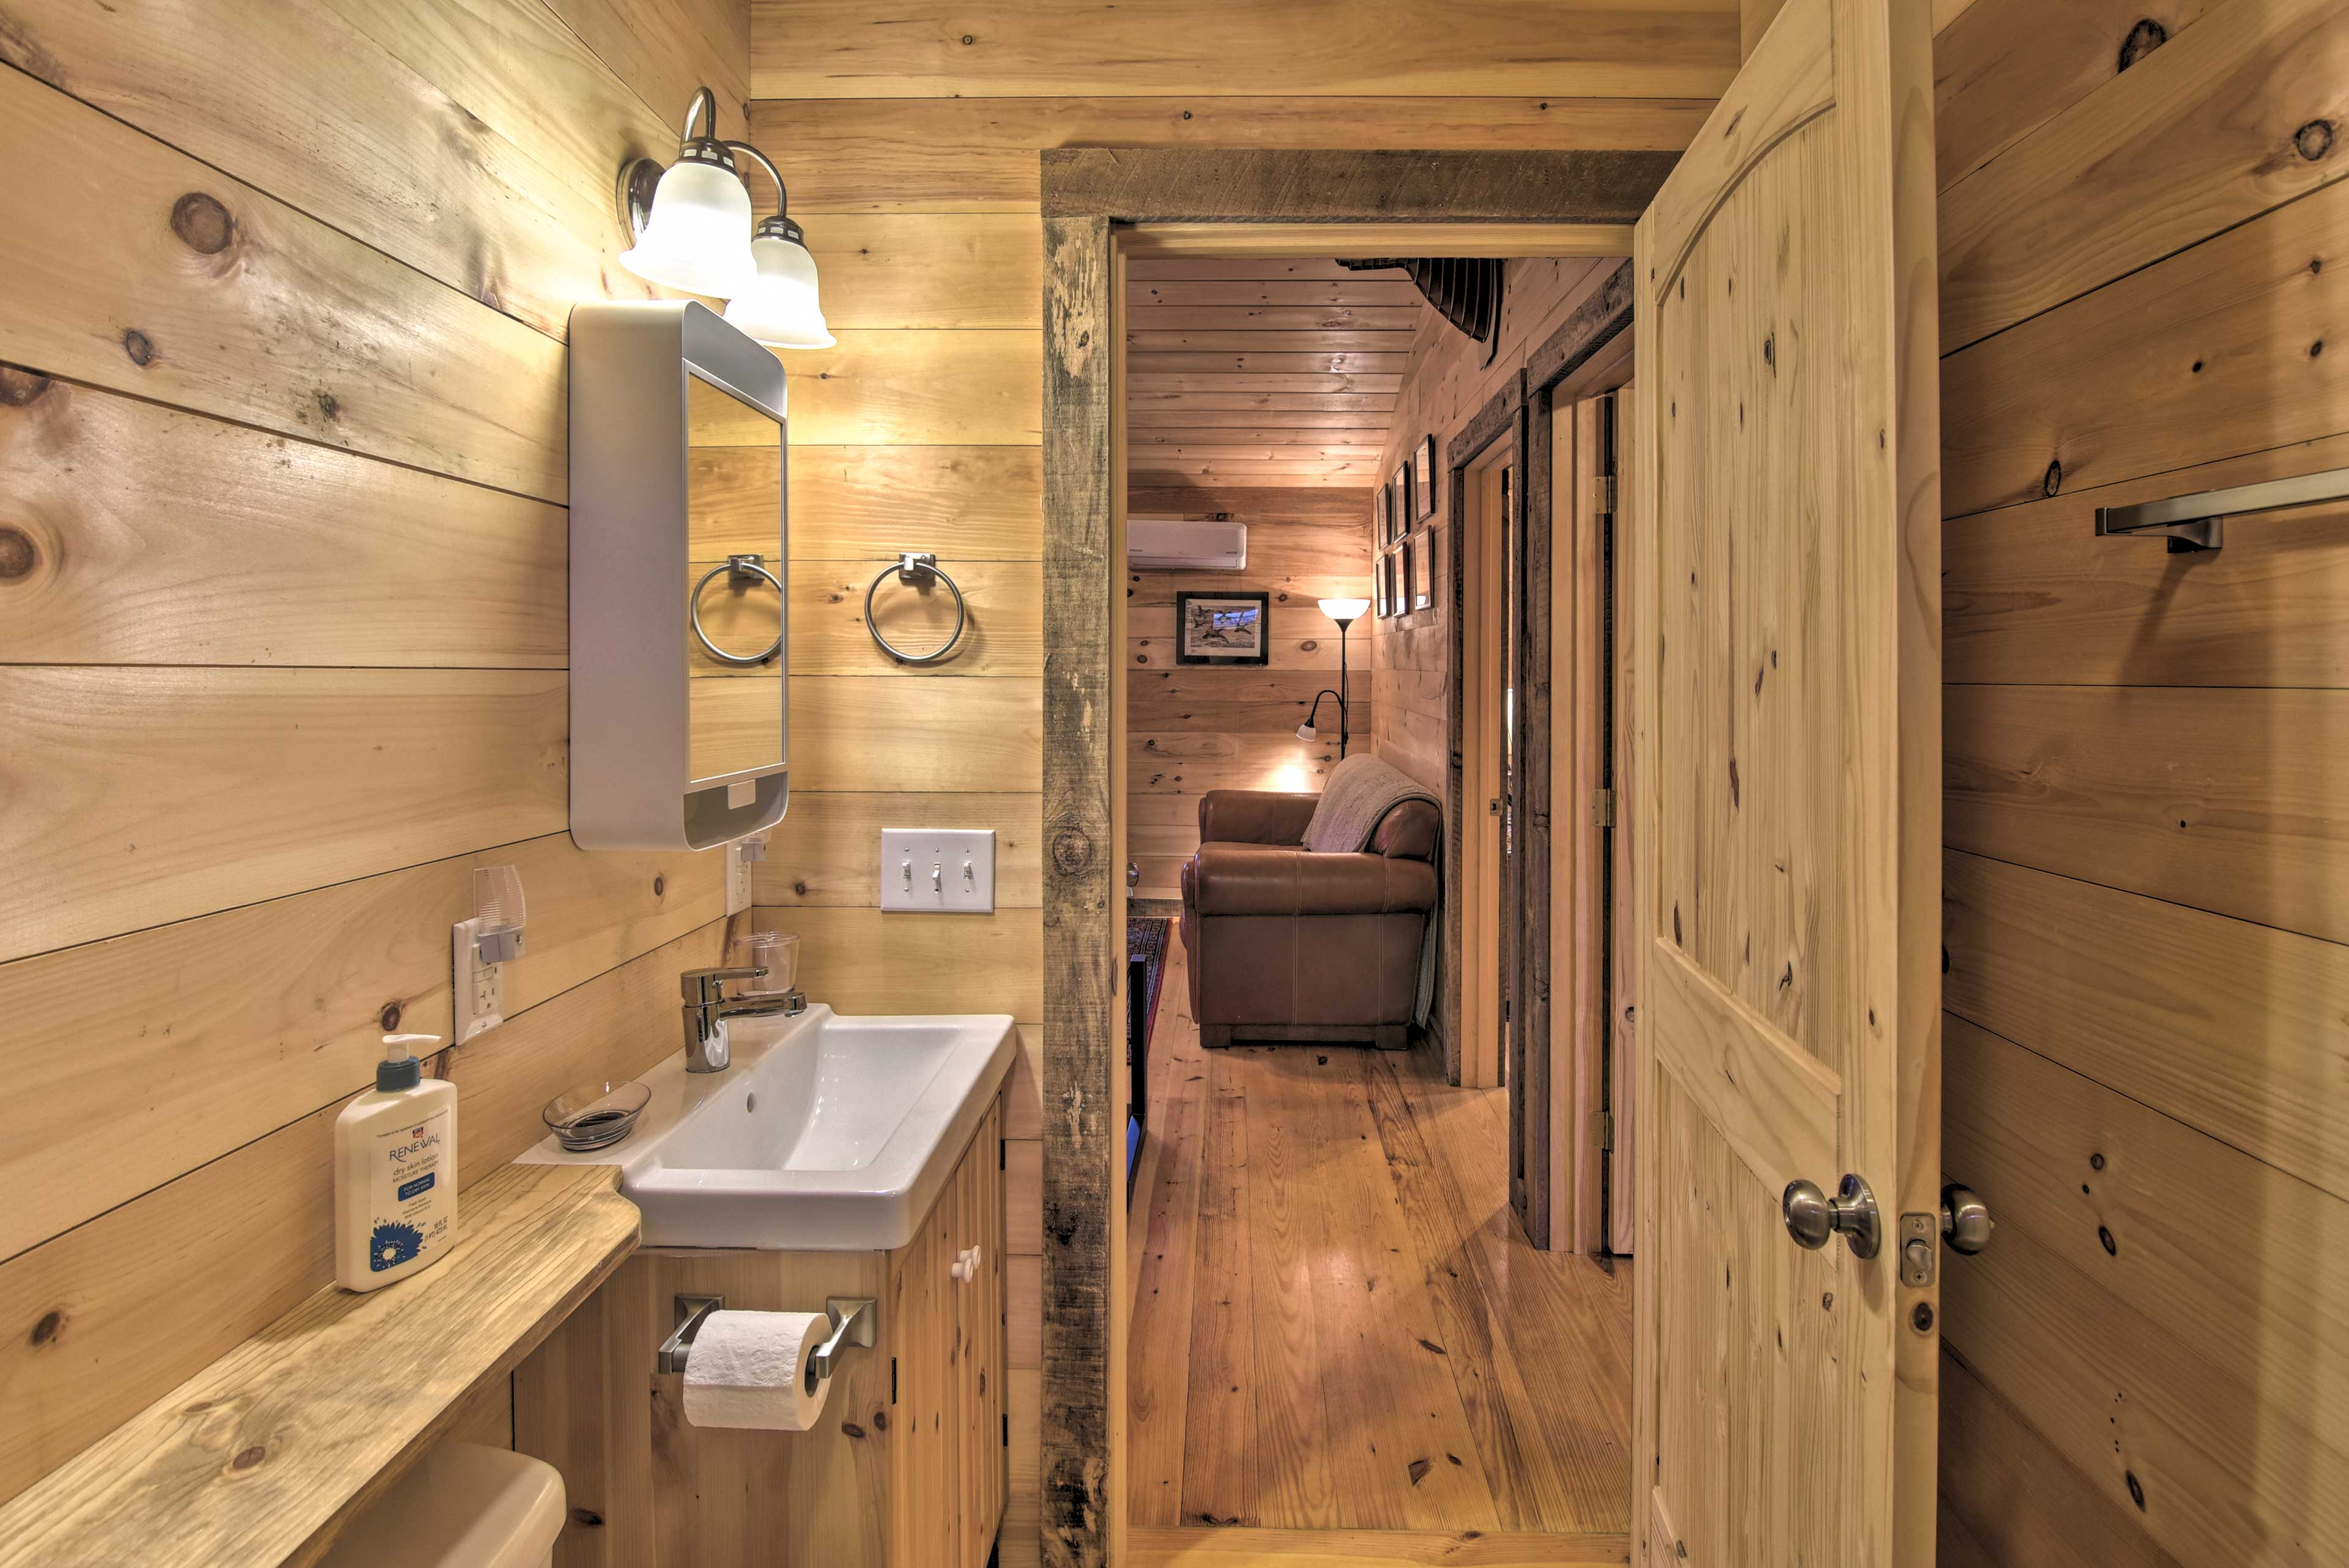 The bathroom is located off the living room.